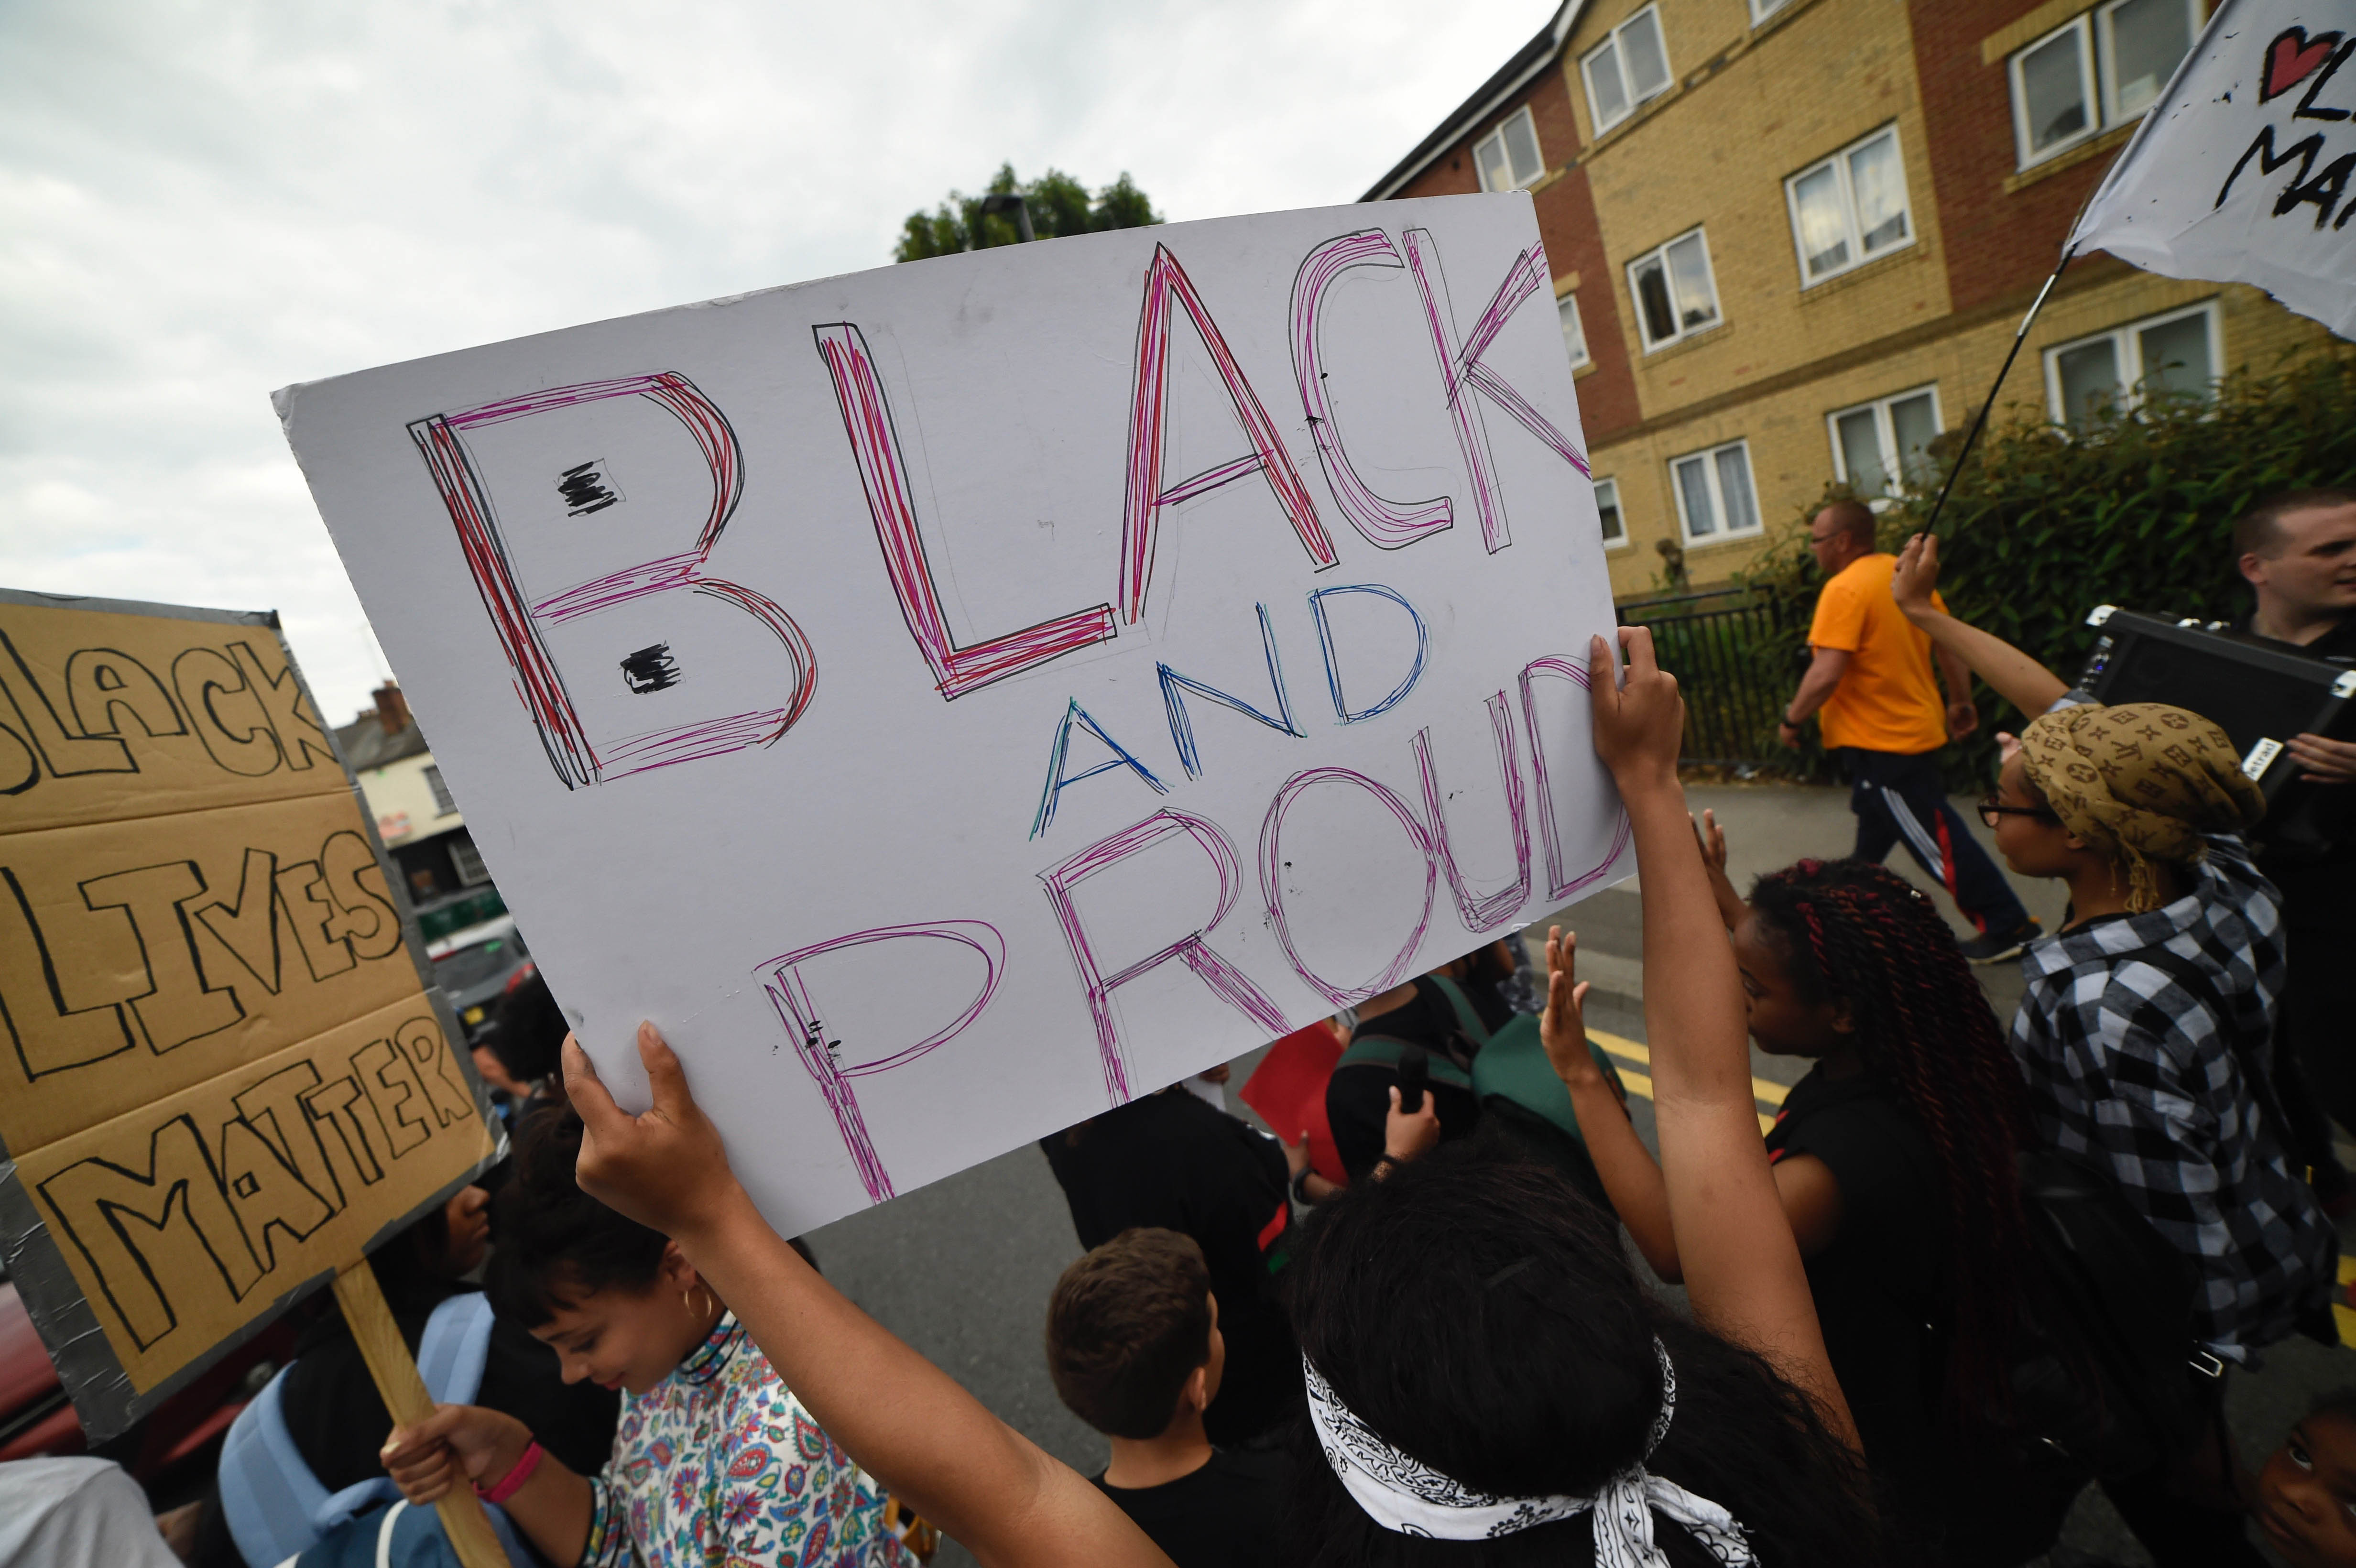 Hundreds protested at a Black Lives Matters peace march in Sheffield, UK, on 22 July 2016.